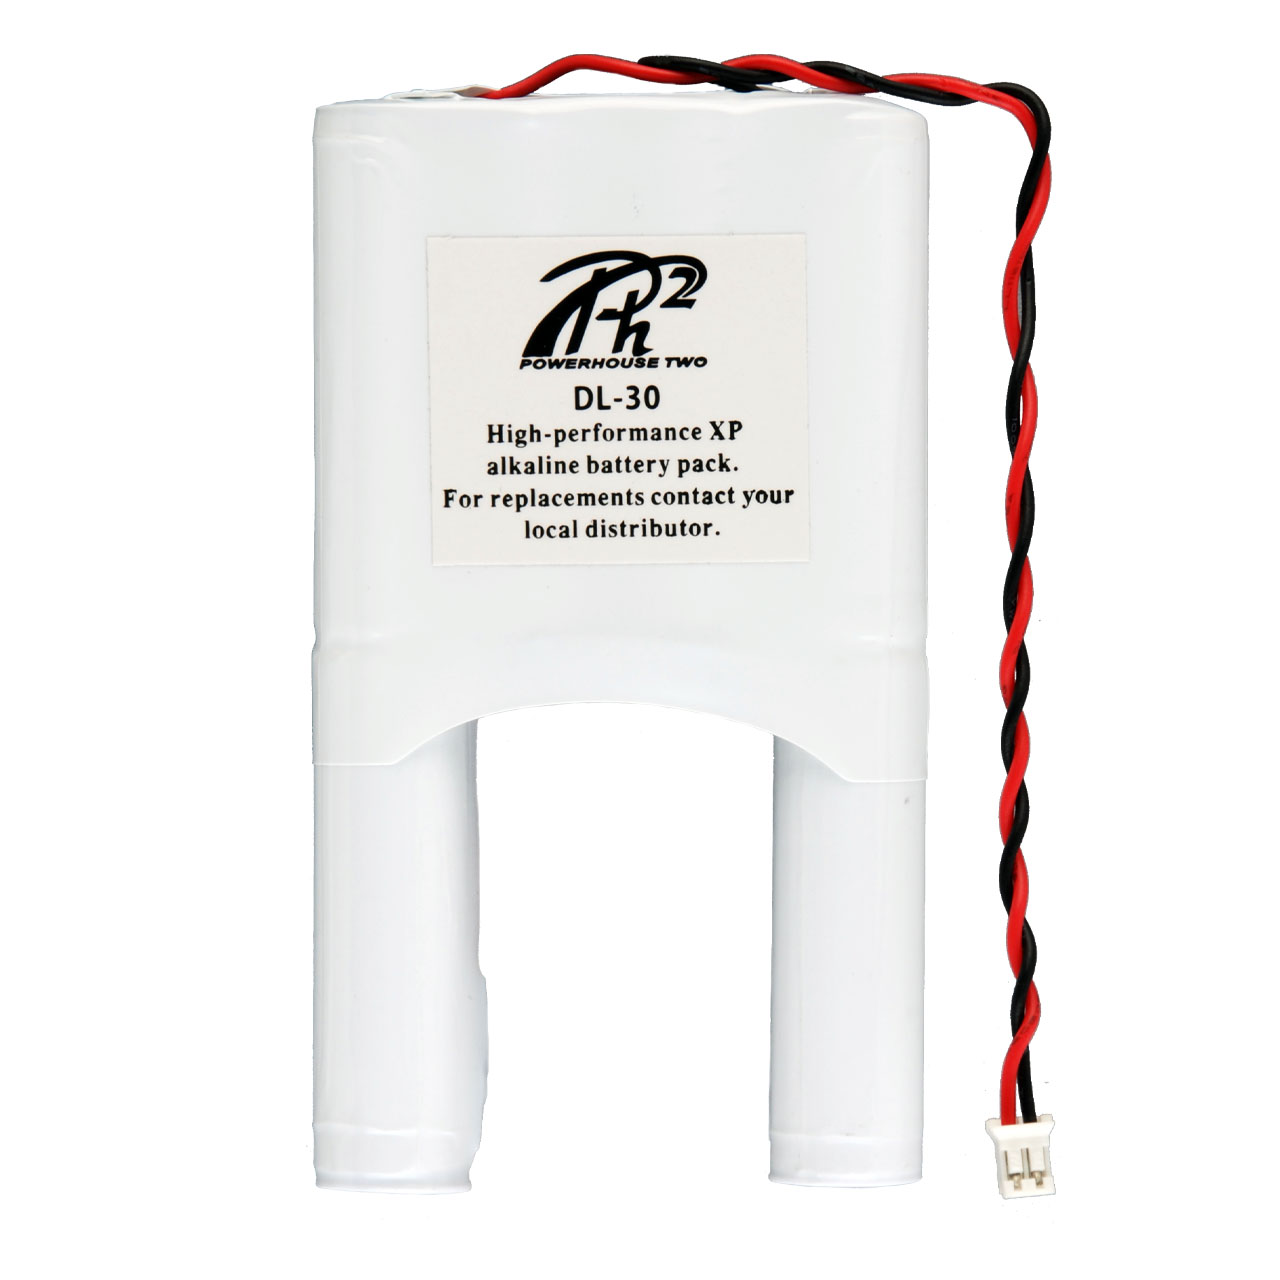 DL-30 Hospitality Battery Pack